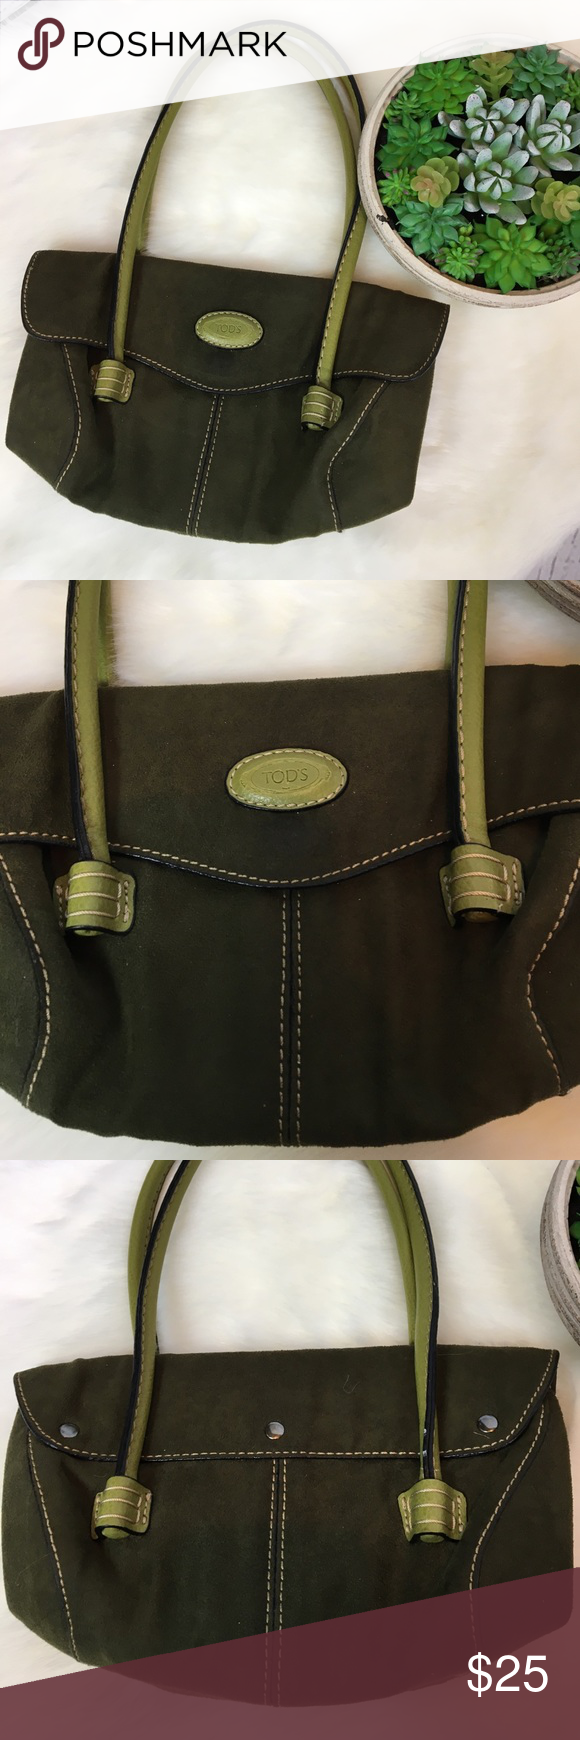 """TOD'S Small Green Retro Chic Suede Shoulder Tote Gorgeous TOD'S Small Shoulder Tote. This bag is in excellent condition from a smoke free home ... Smaller shoulder bag about 8"""" in height with 8"""" strap drop. Cute smaller bag for winter!! Tod's with olive green suede outer and green leather straps. Interior has zippered compartments. Perfect for St Pattys day!! Such a cute little thing!! Tod's Bags"""